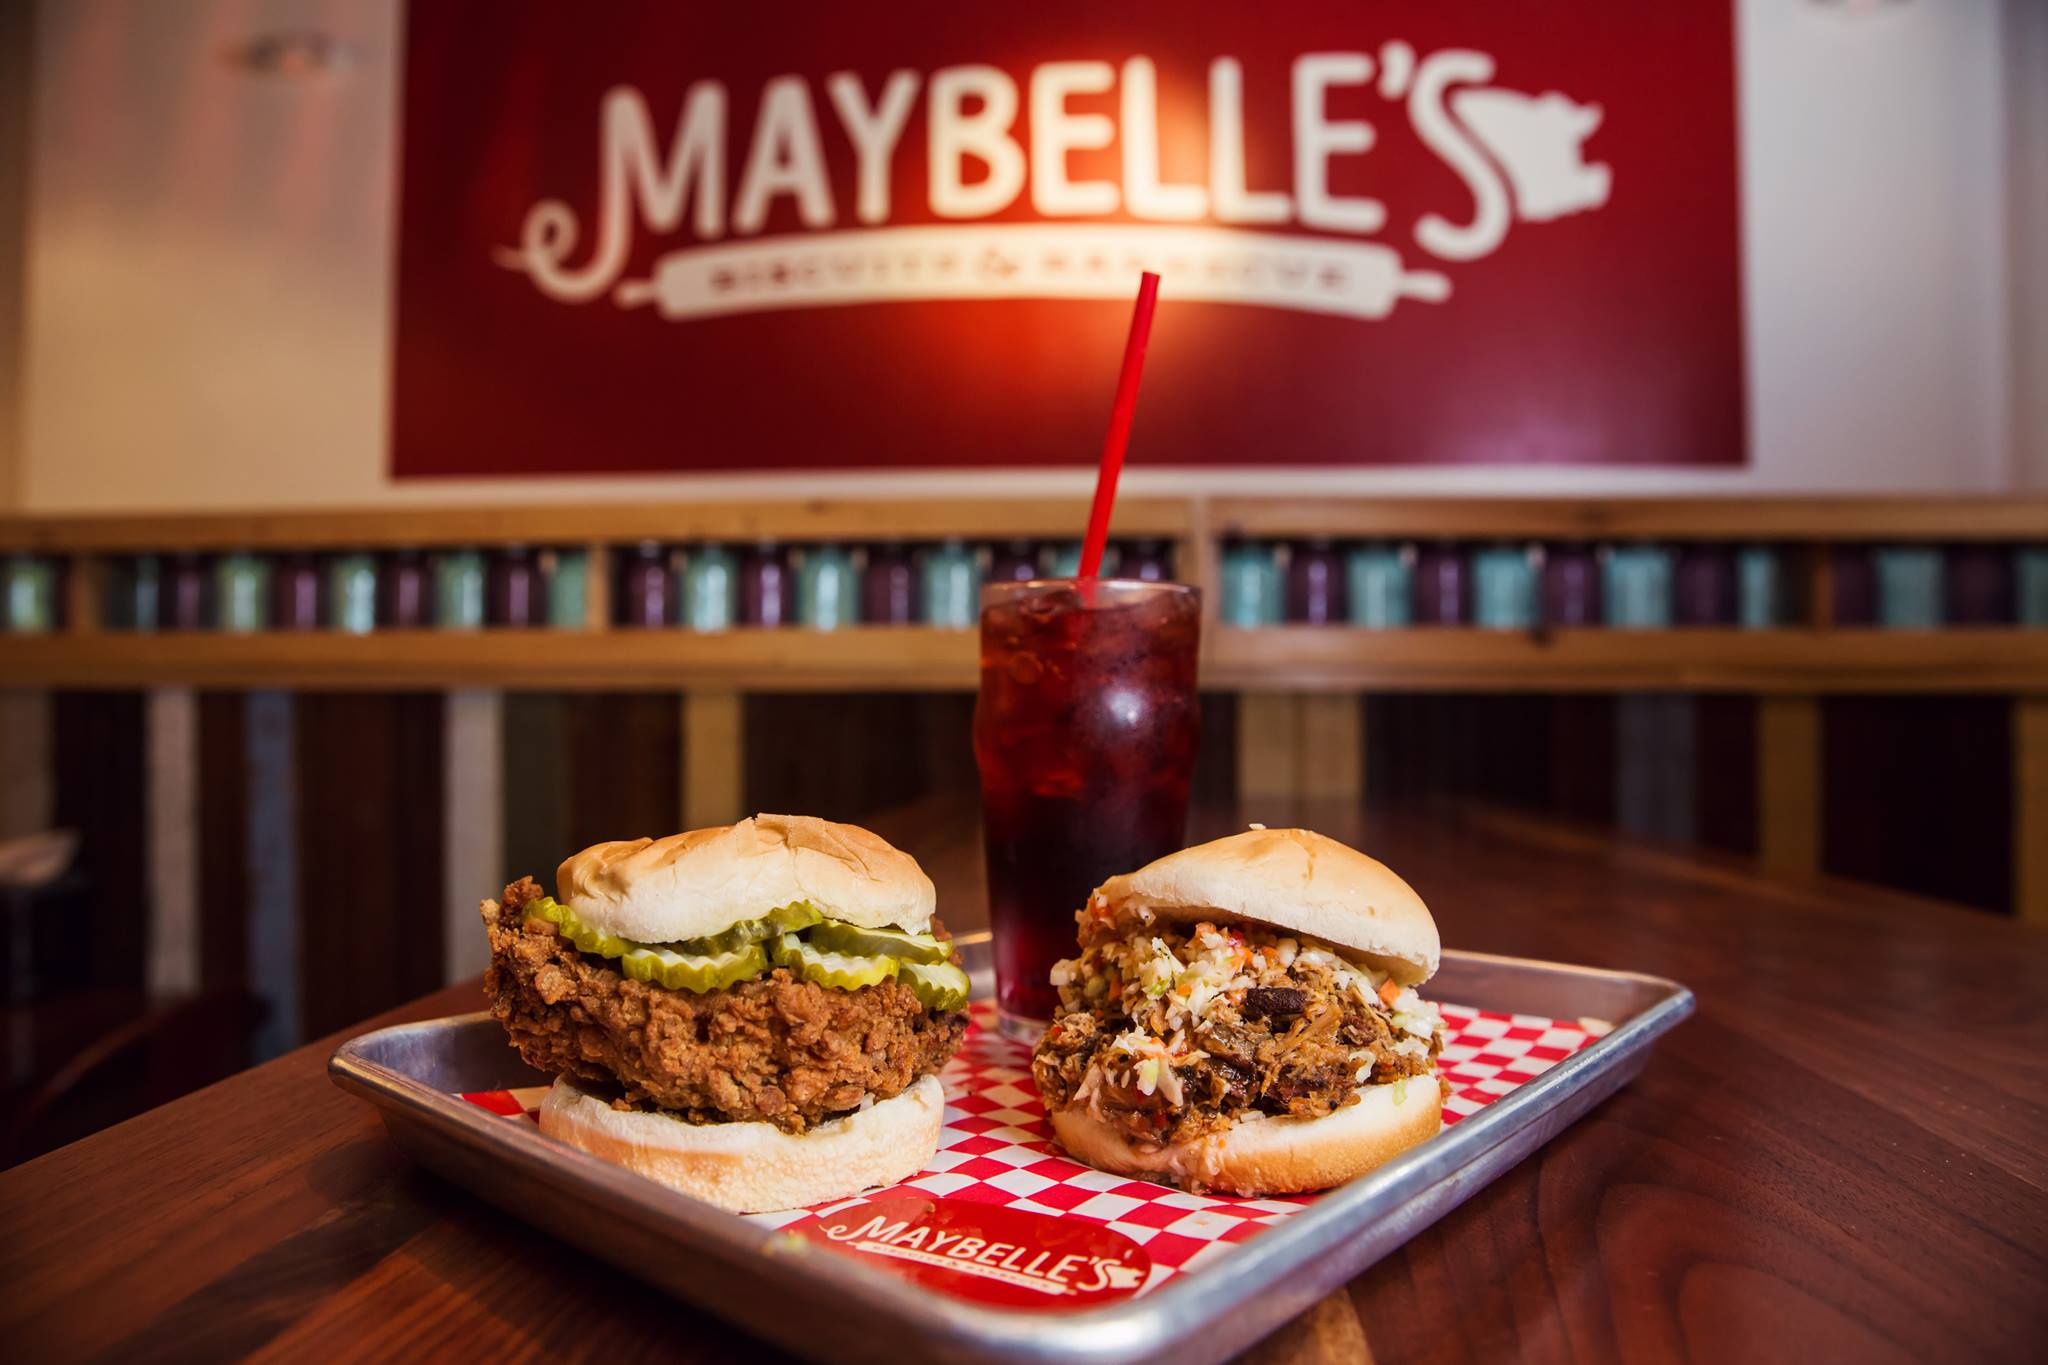 Maybelle's